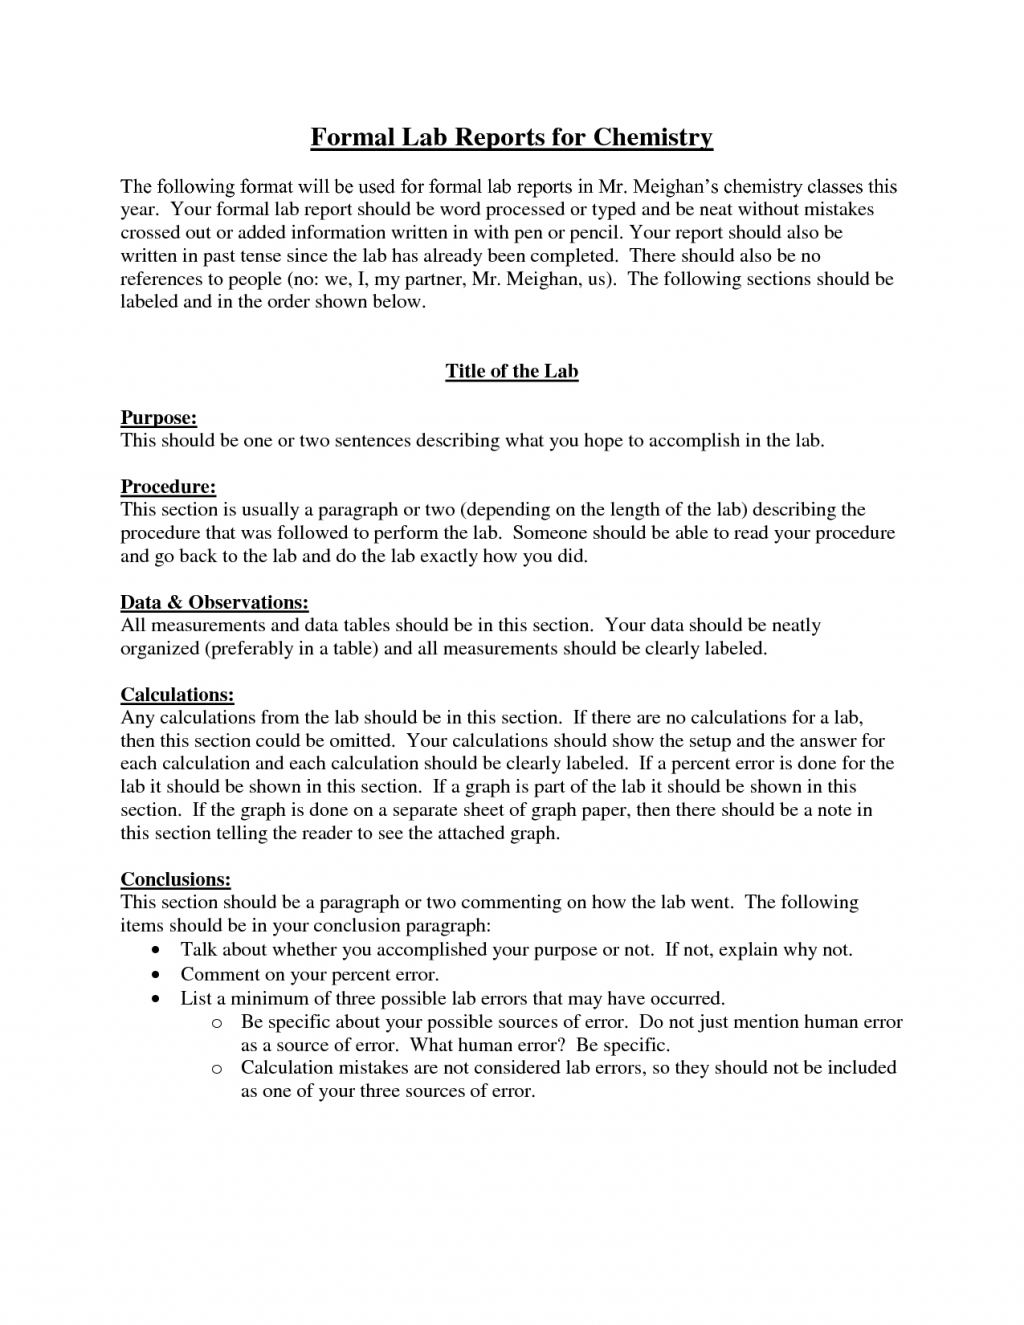 A lab report example